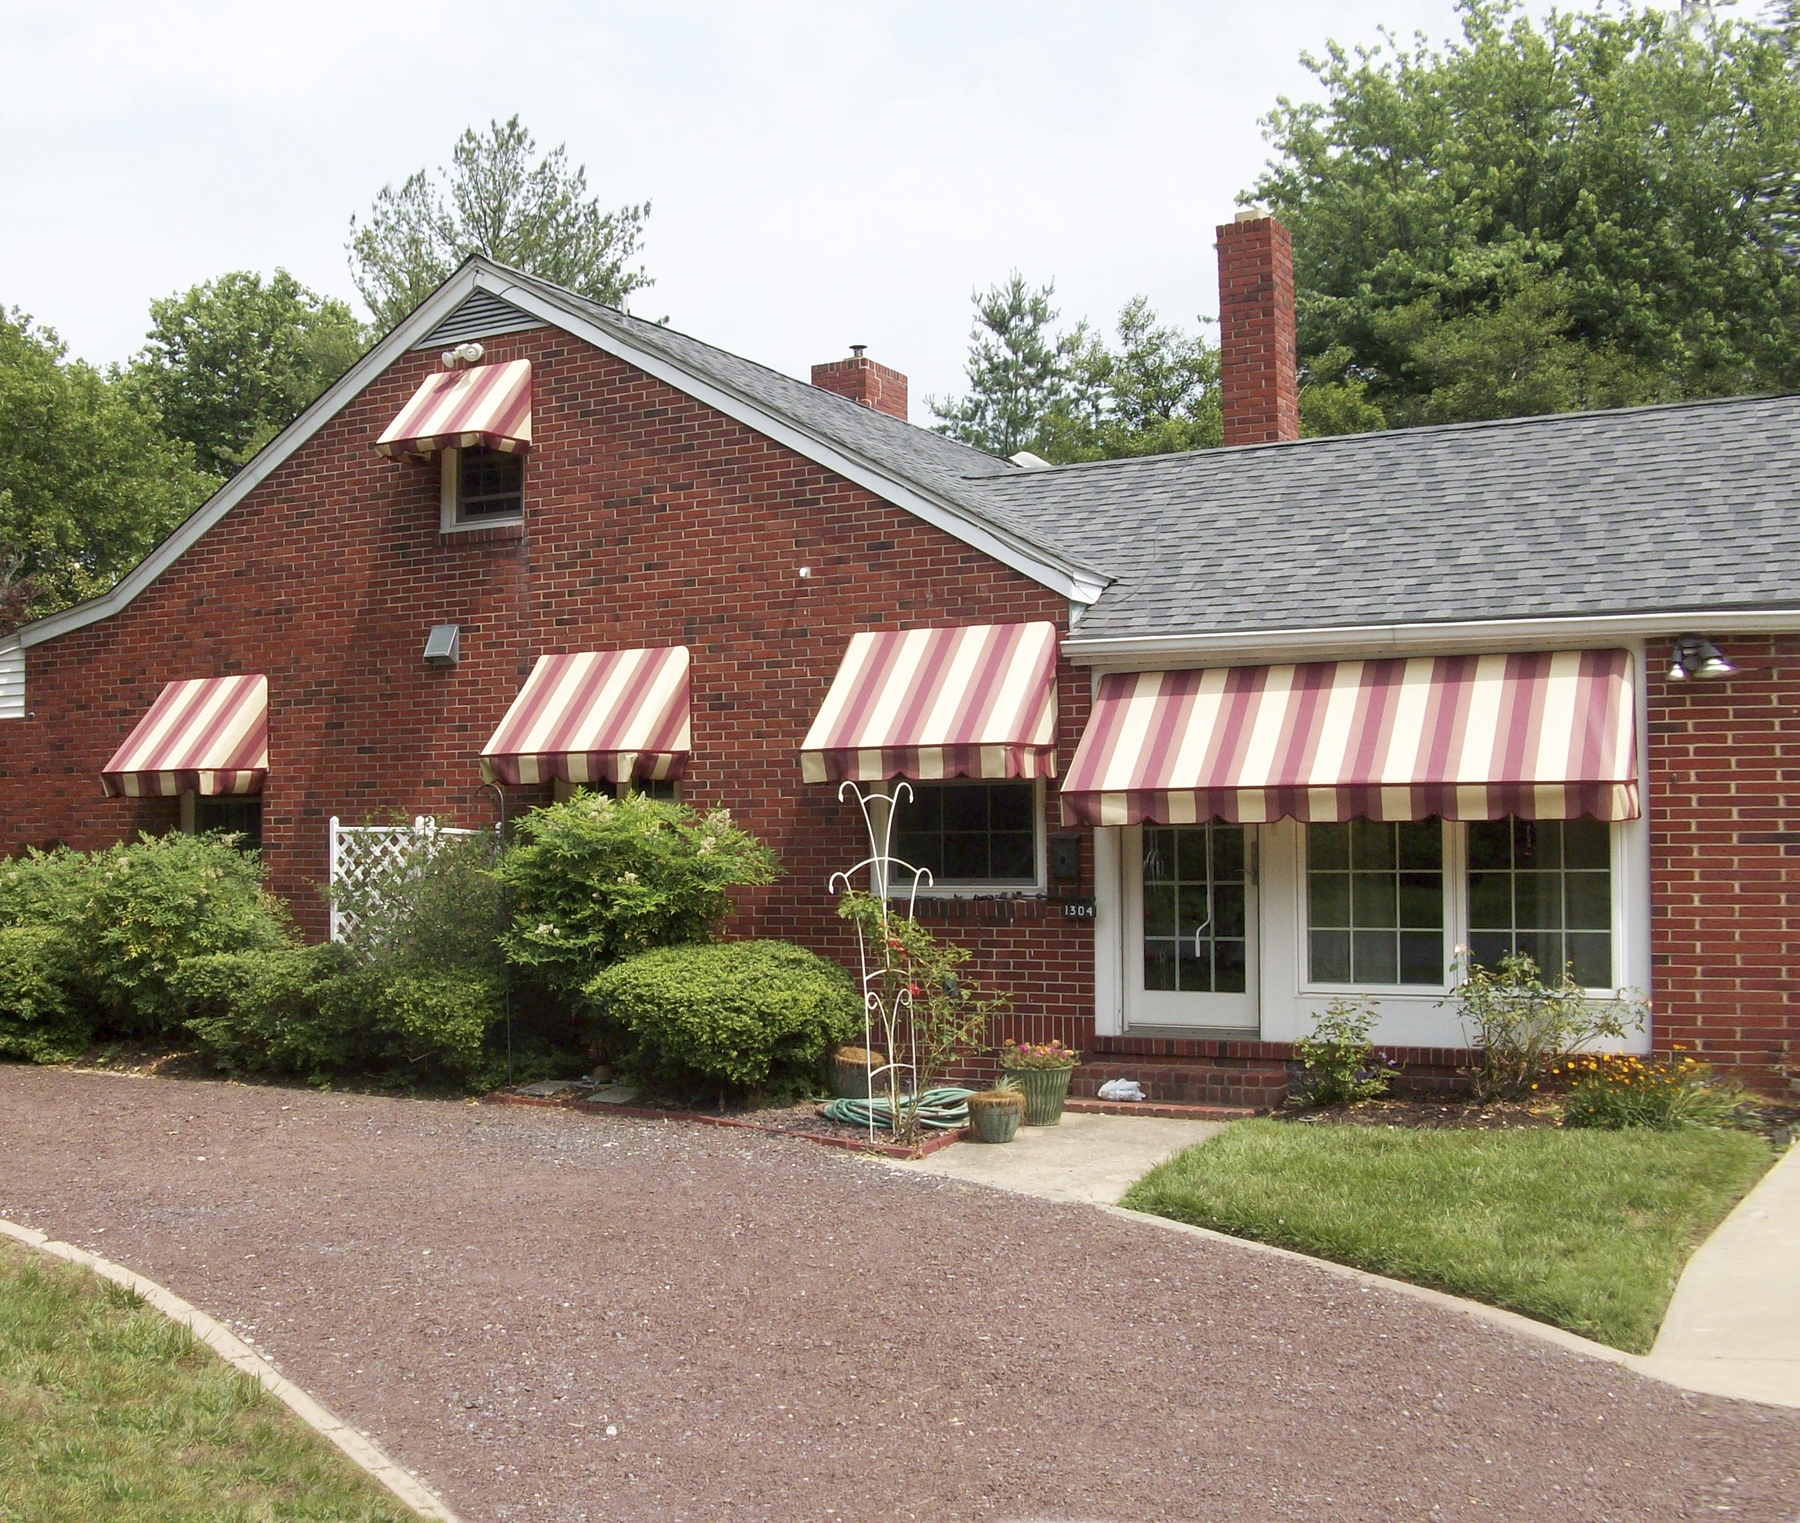 Residential Awnings - A Realtor's Perspective